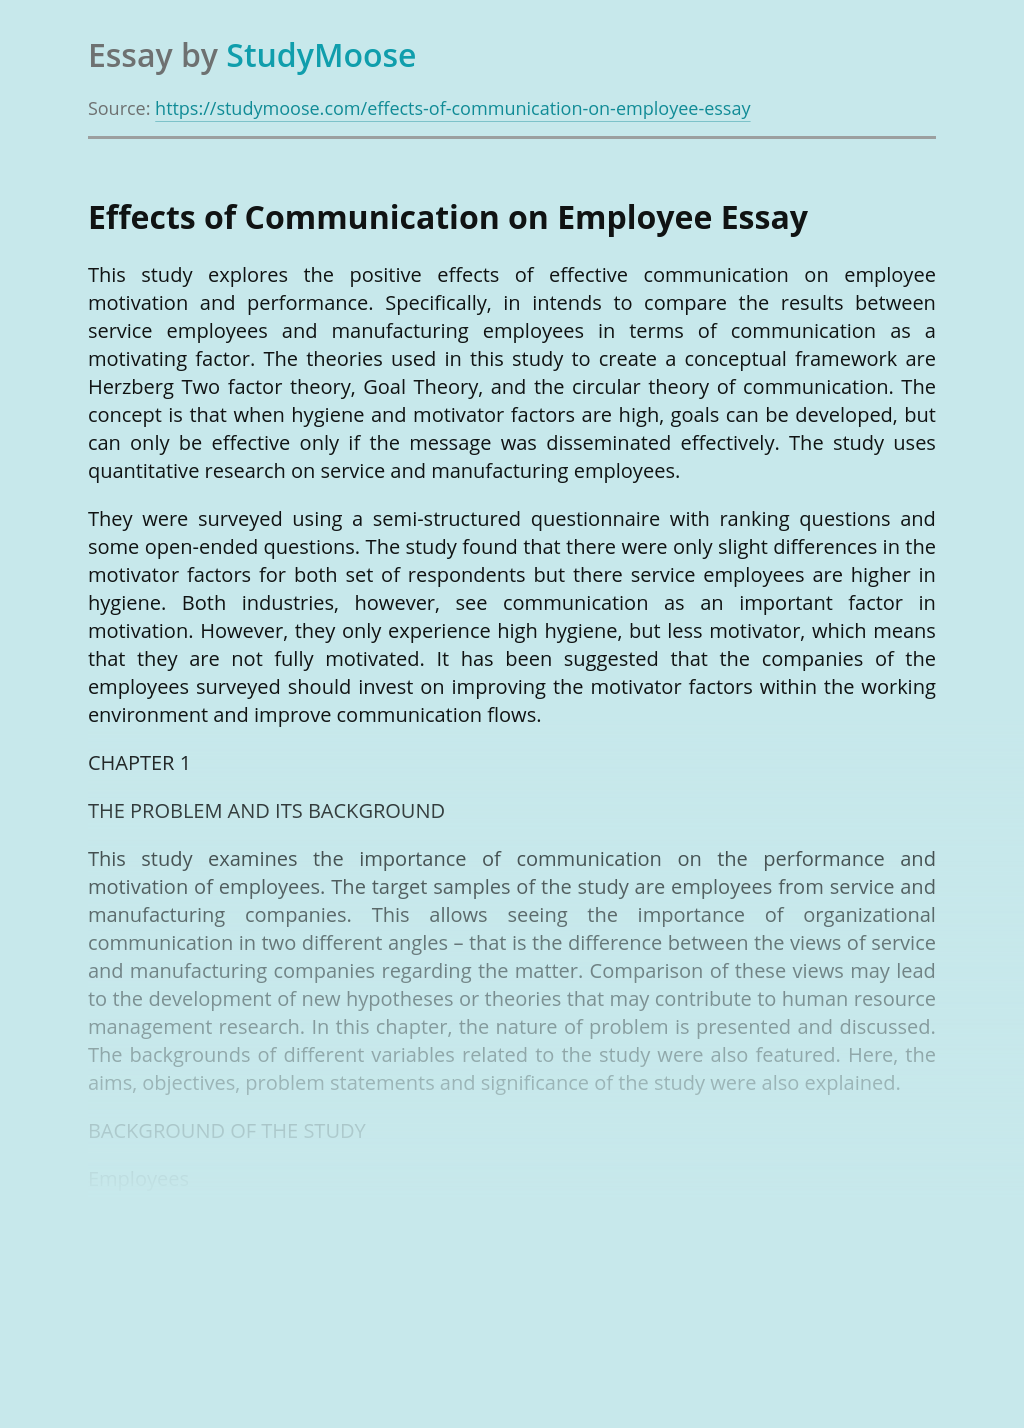 Effects of Communication on Employee